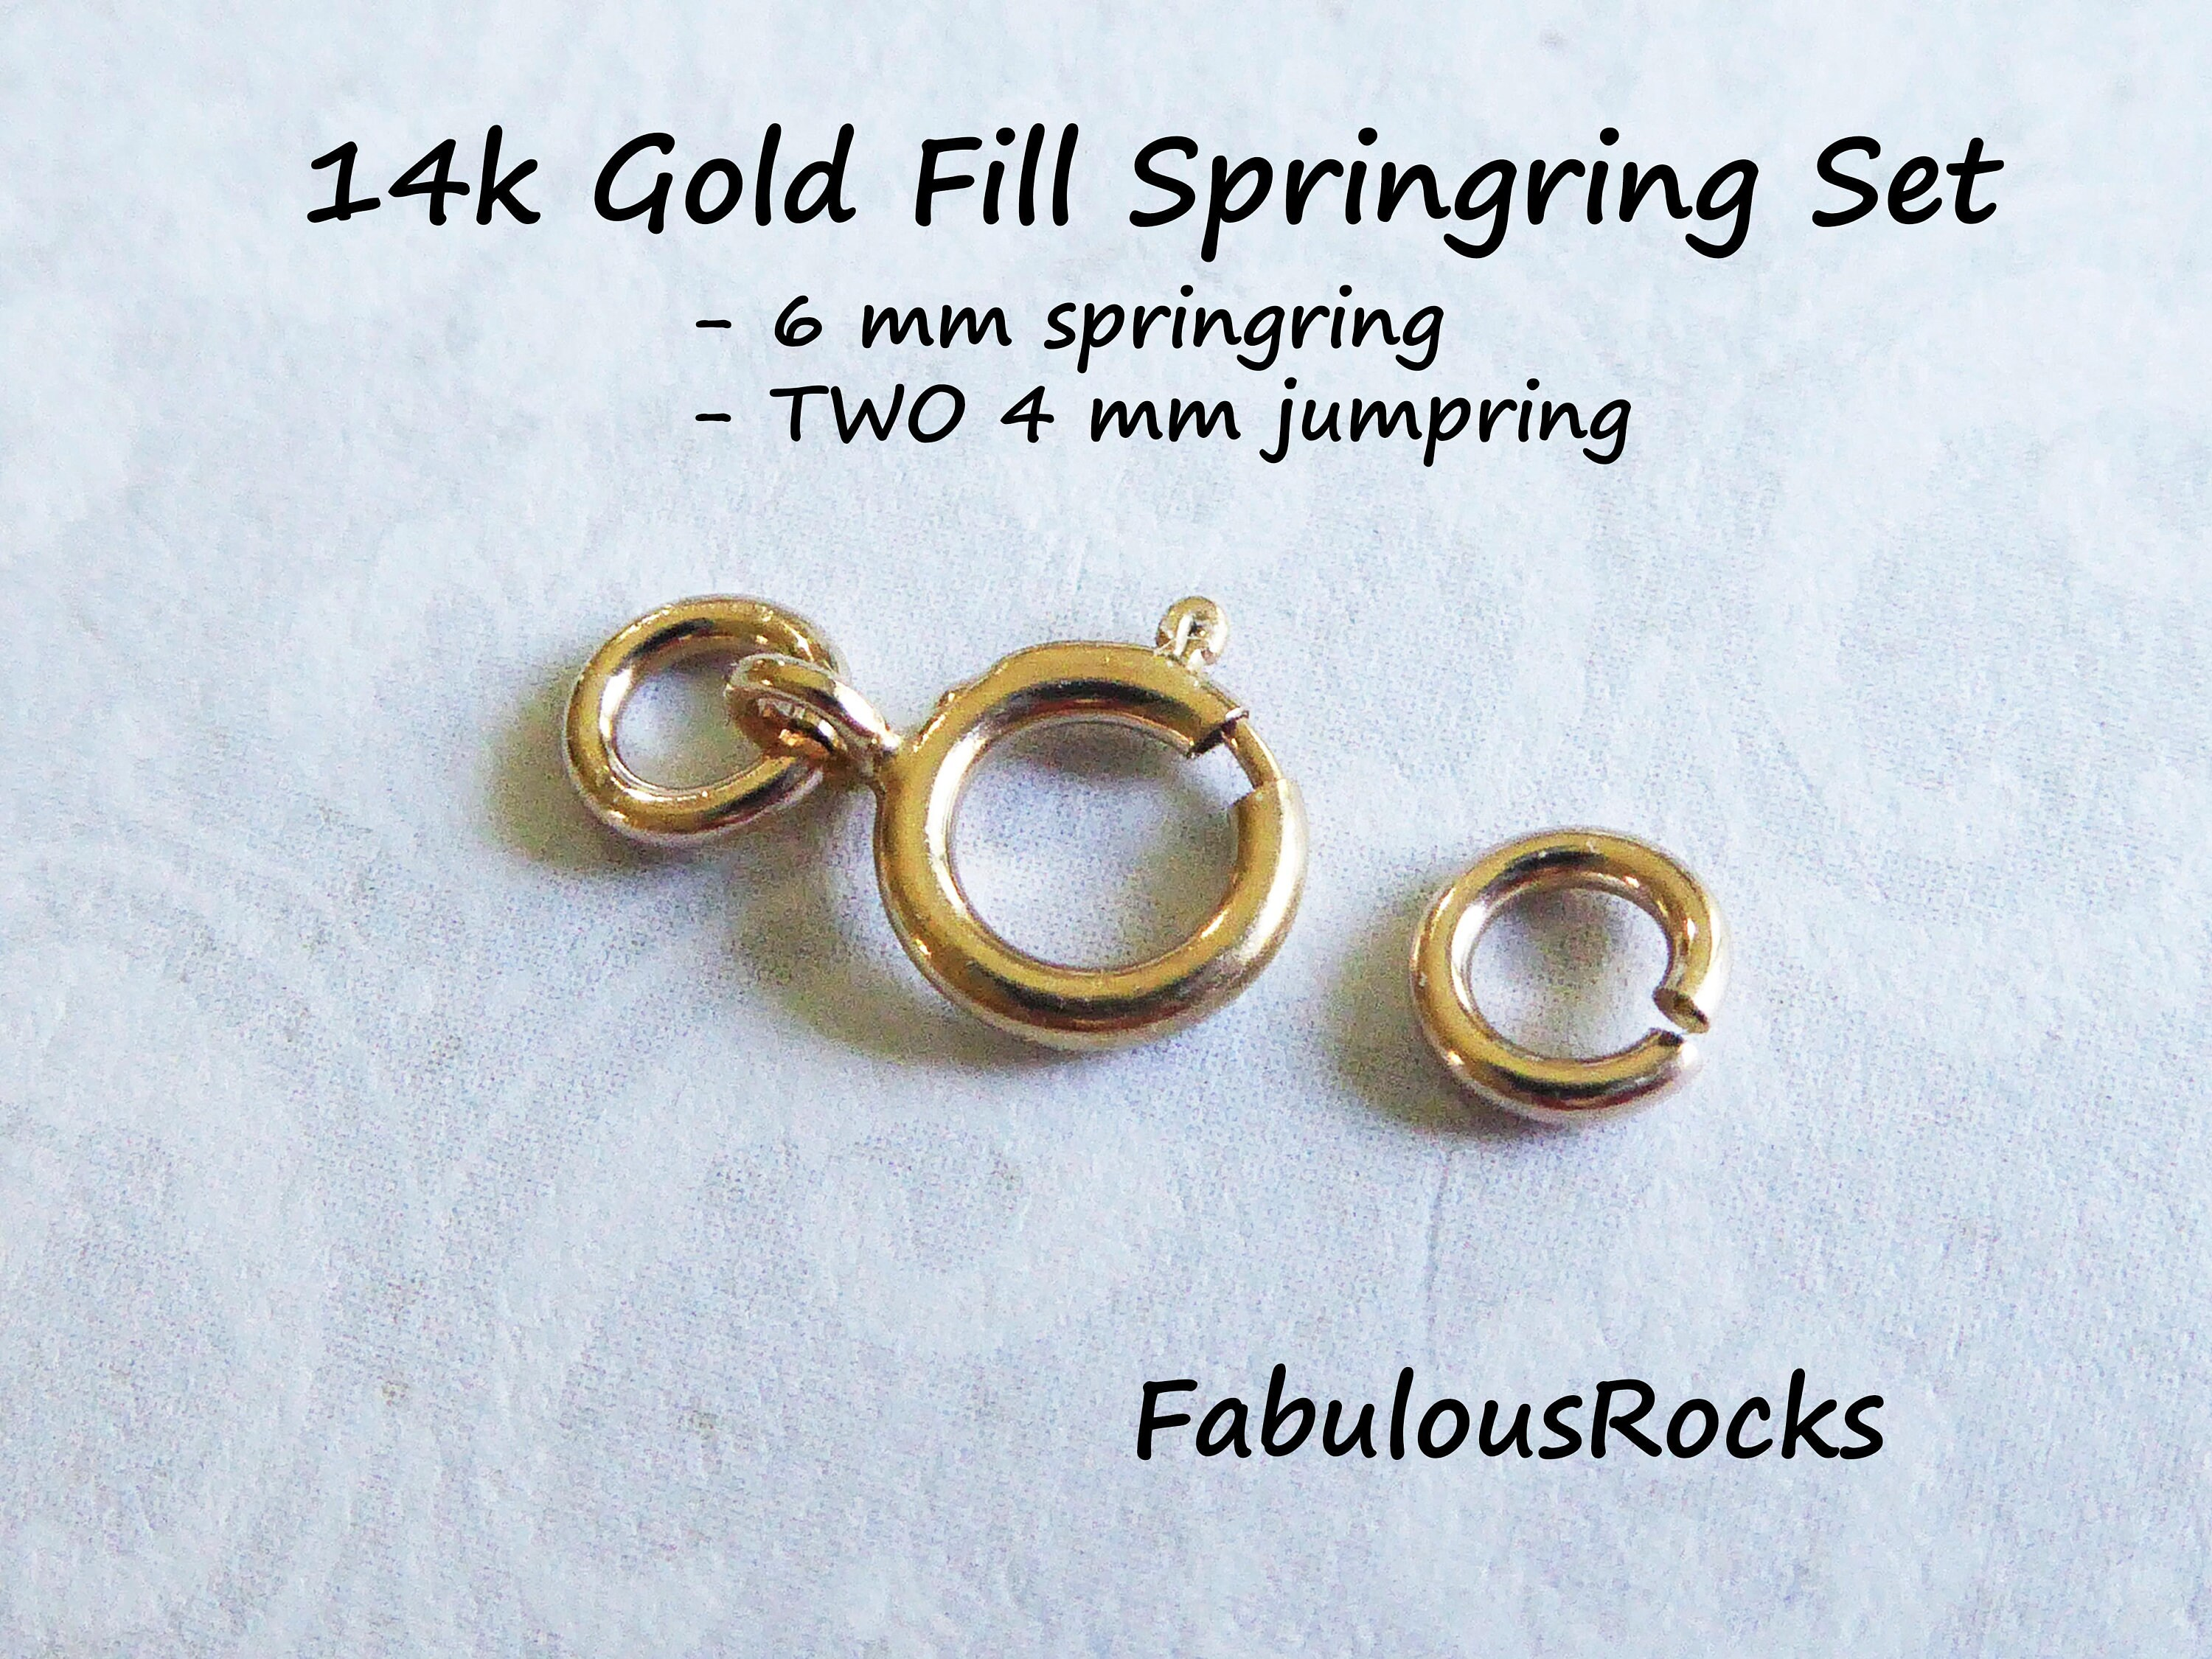 Wholesale Jewelry Gold Filled Wholesale Jewelry Gold 14k